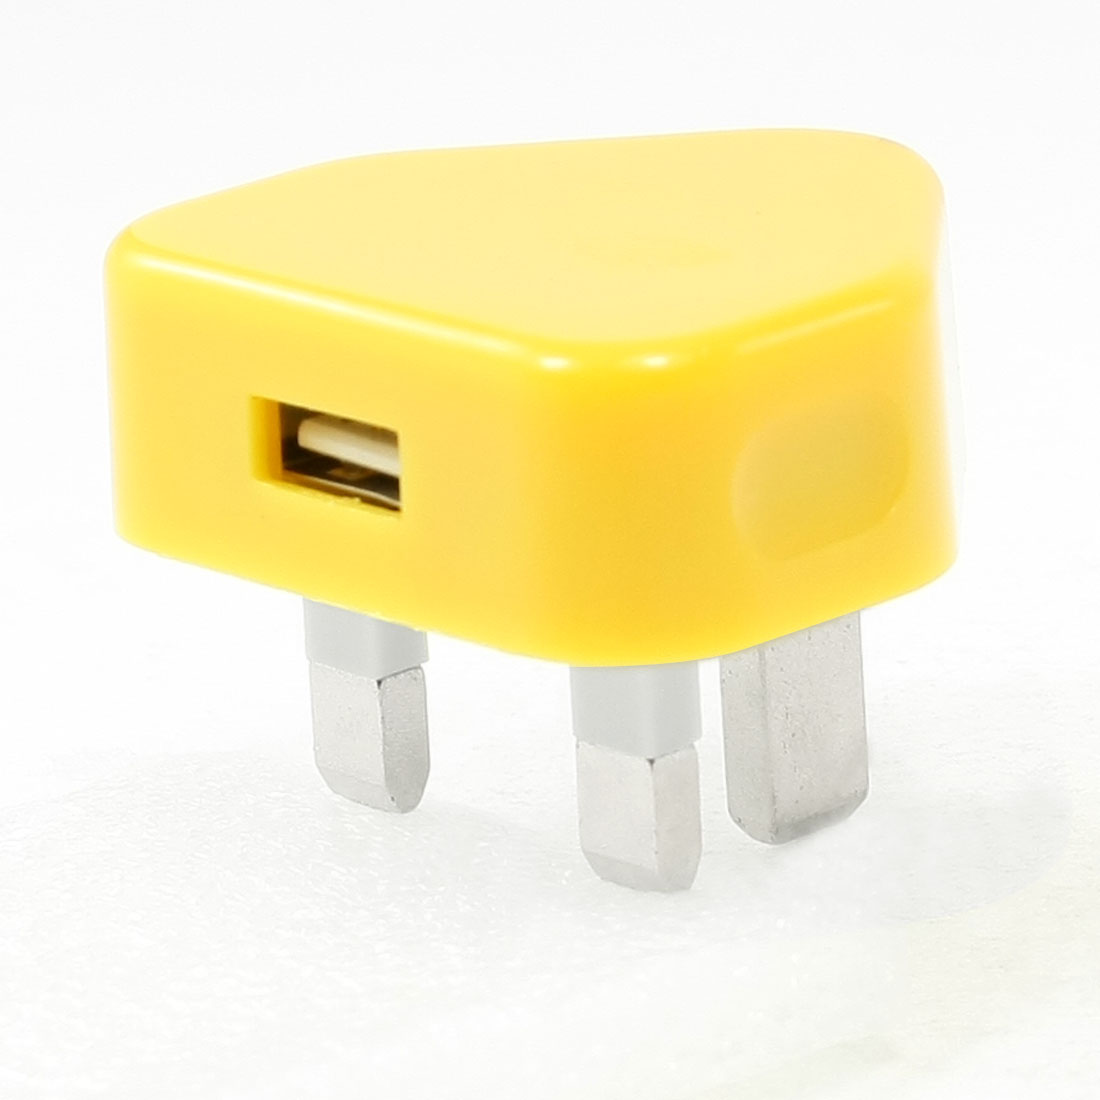 UK Plug 100-240V AC to USB 2.0 Port Charger Adapter Yellow for Smartphone